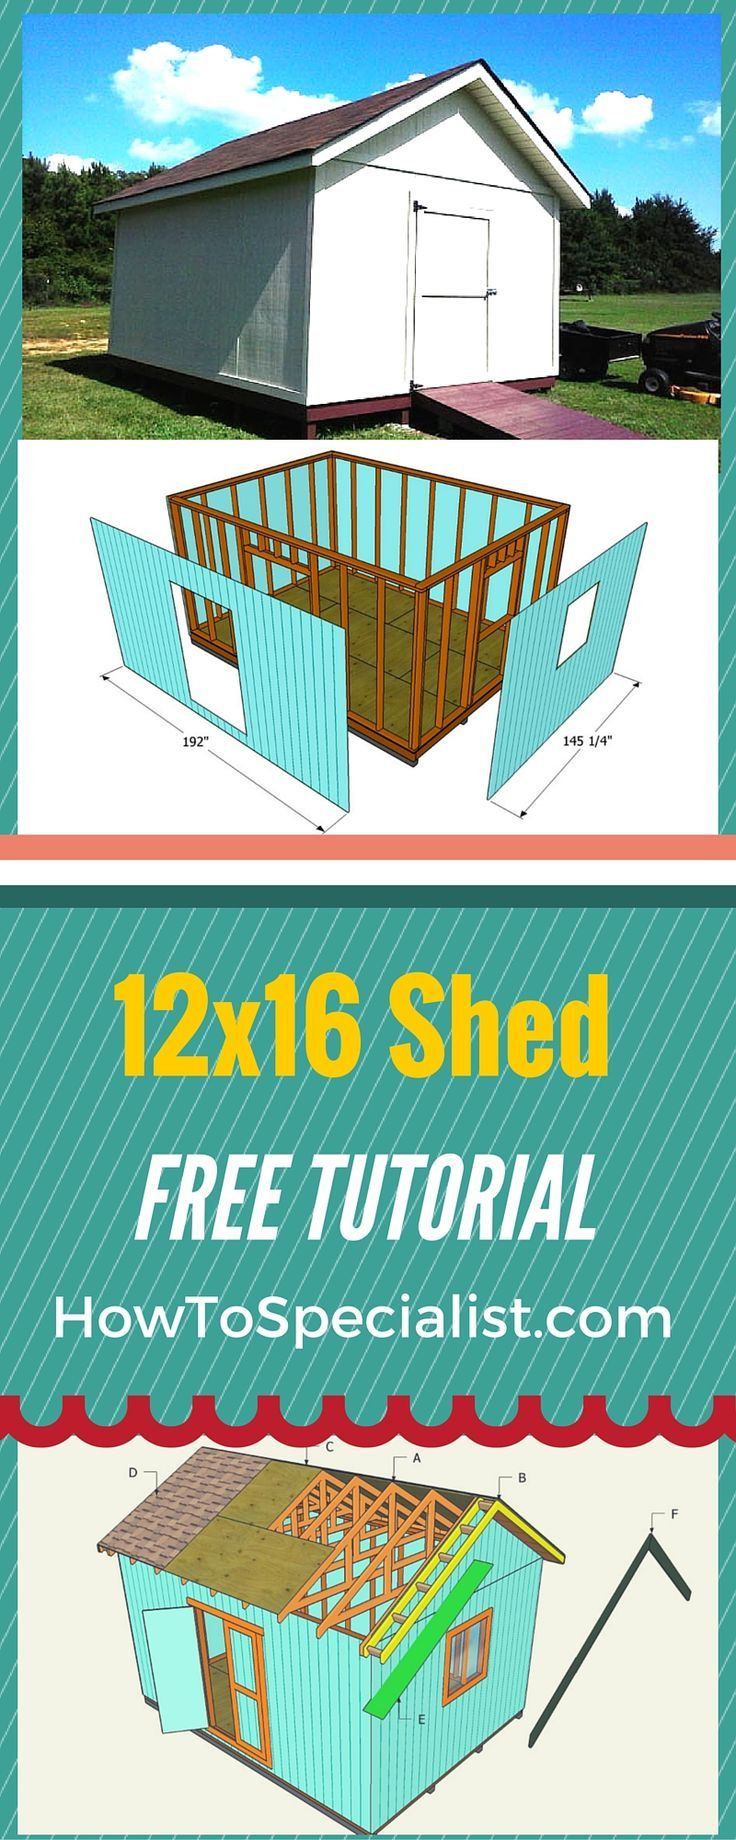 How to build a 12x16 shed - Easy to follow free shed plans and instructions for you to create storage space in your garden for tools and furniture! http://www.howtospecialist.com #diy #shed #storage